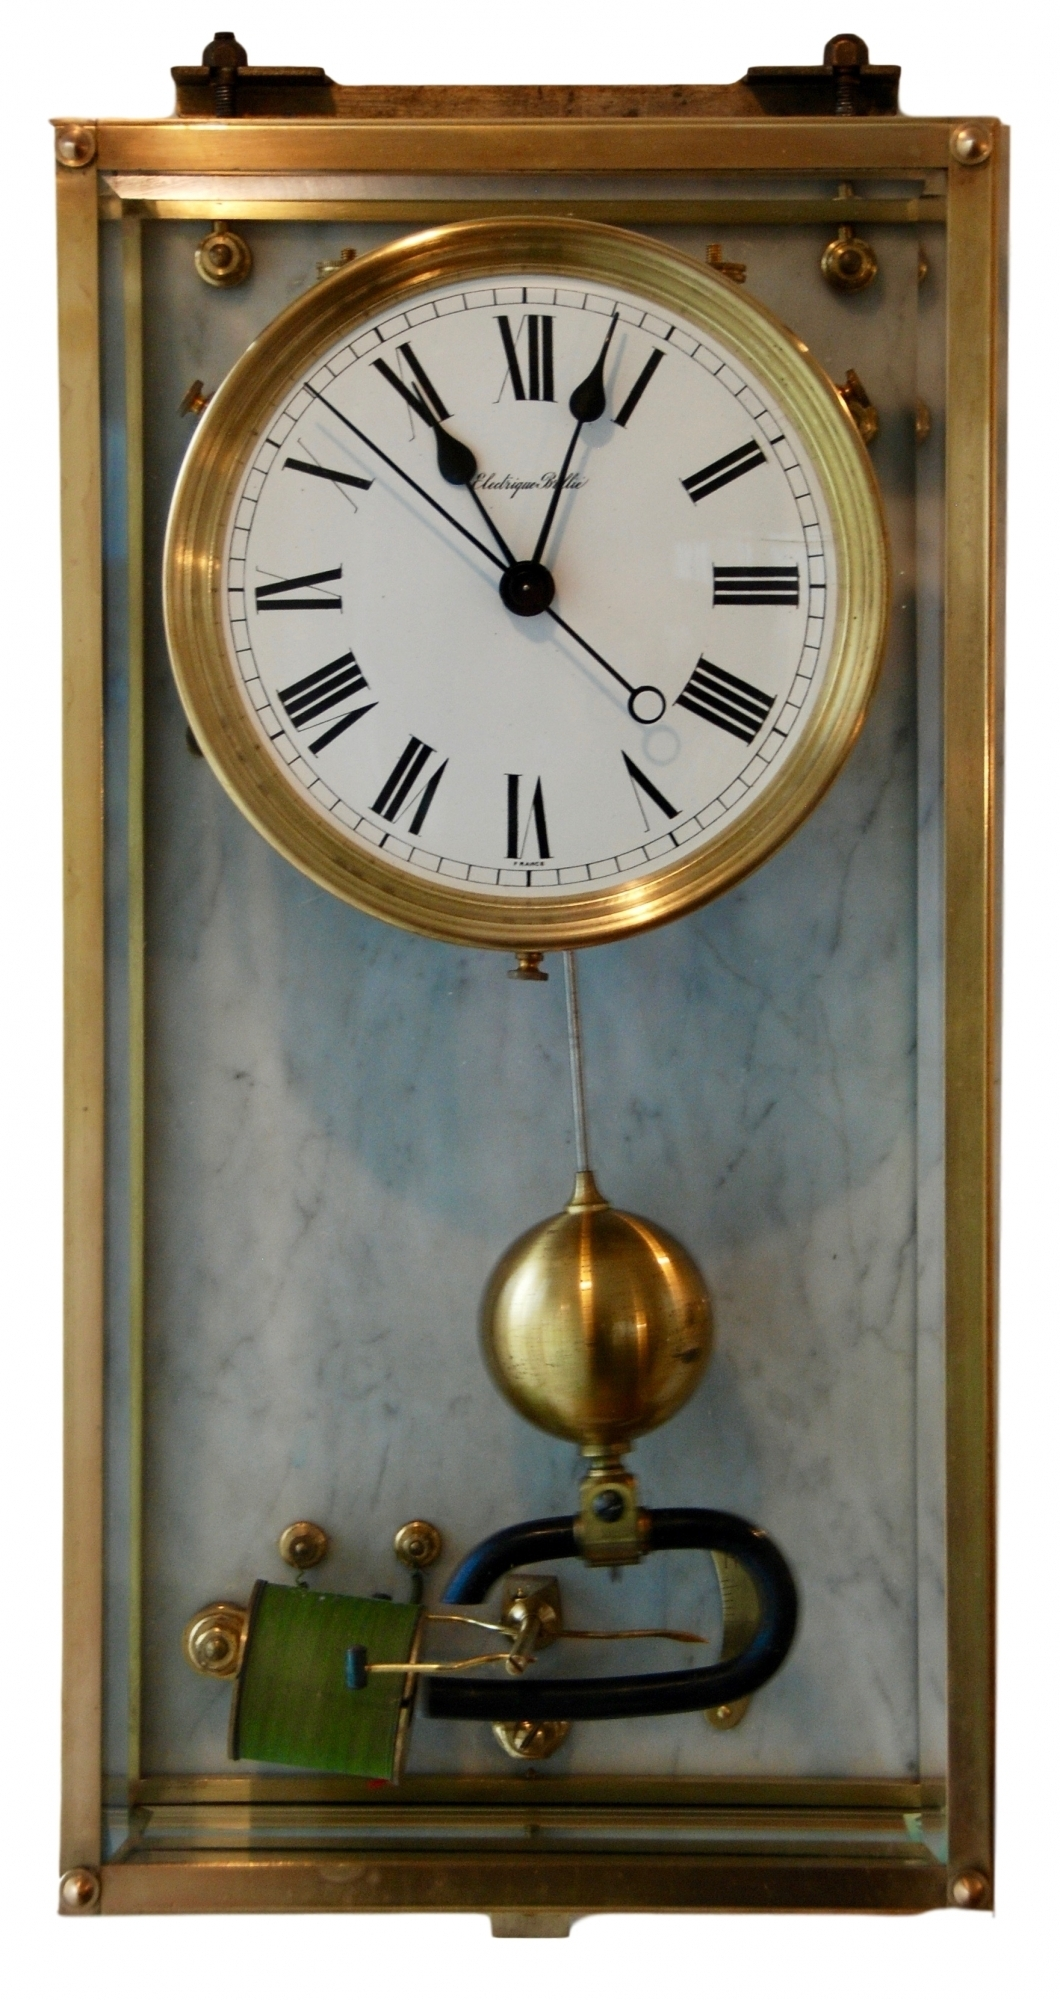 W44 Brass Art Deco Electrique Brillié Wall Clock | Artlistings For Most Recently Released Art Deco Wall Clock (Gallery 17 of 20)